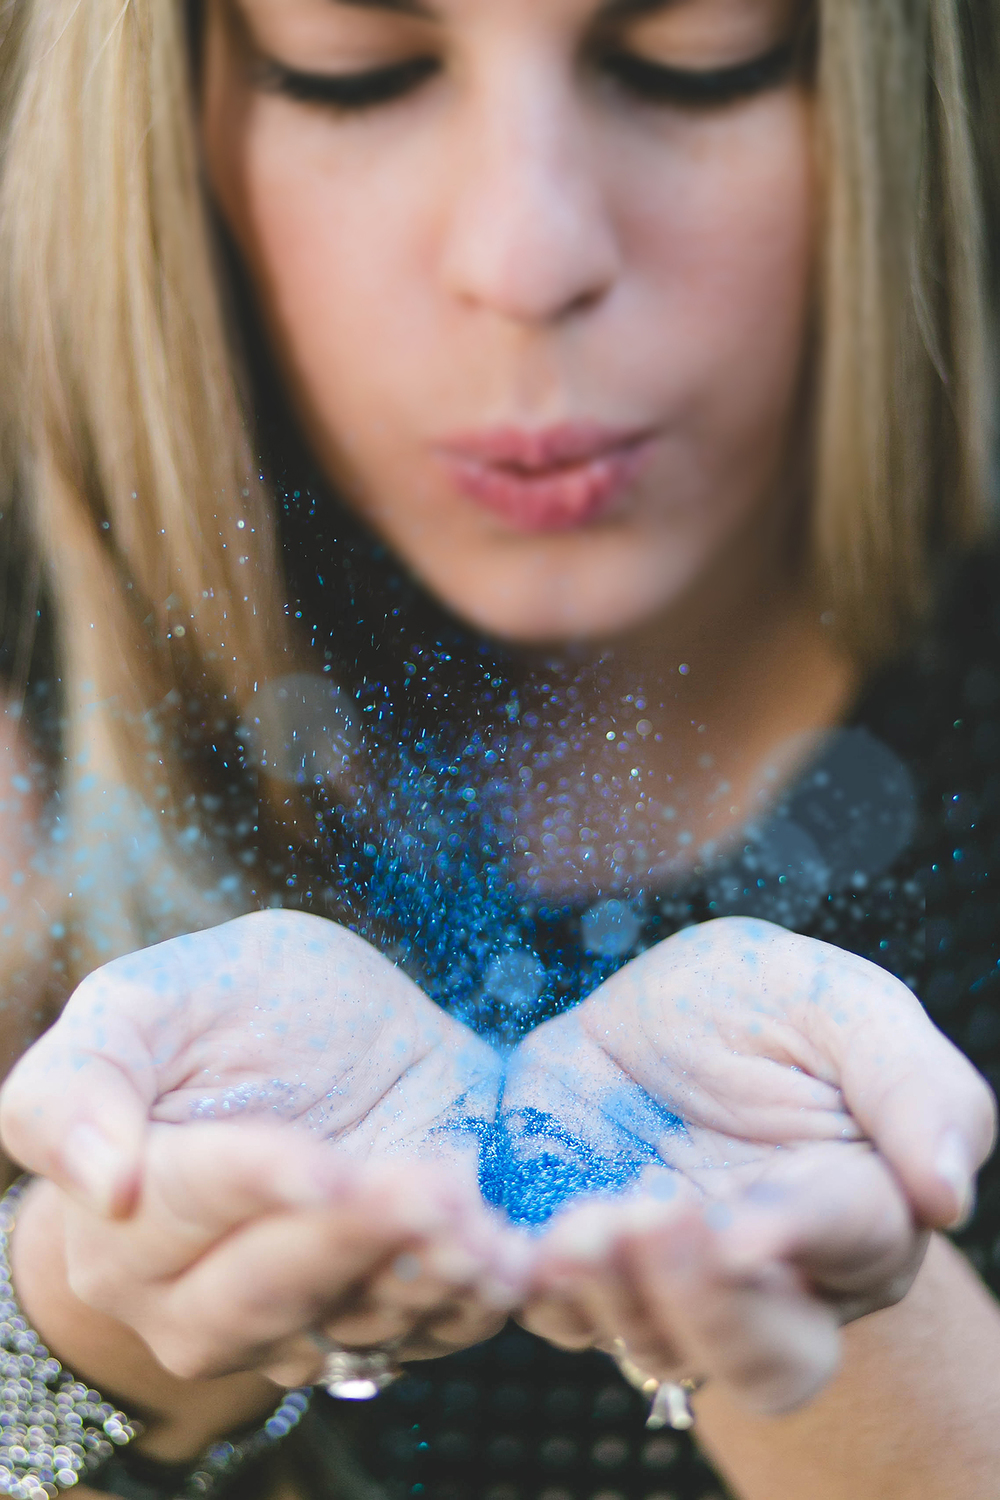 adam-szarmack-engagement-bokeh-blue-dust.jpg